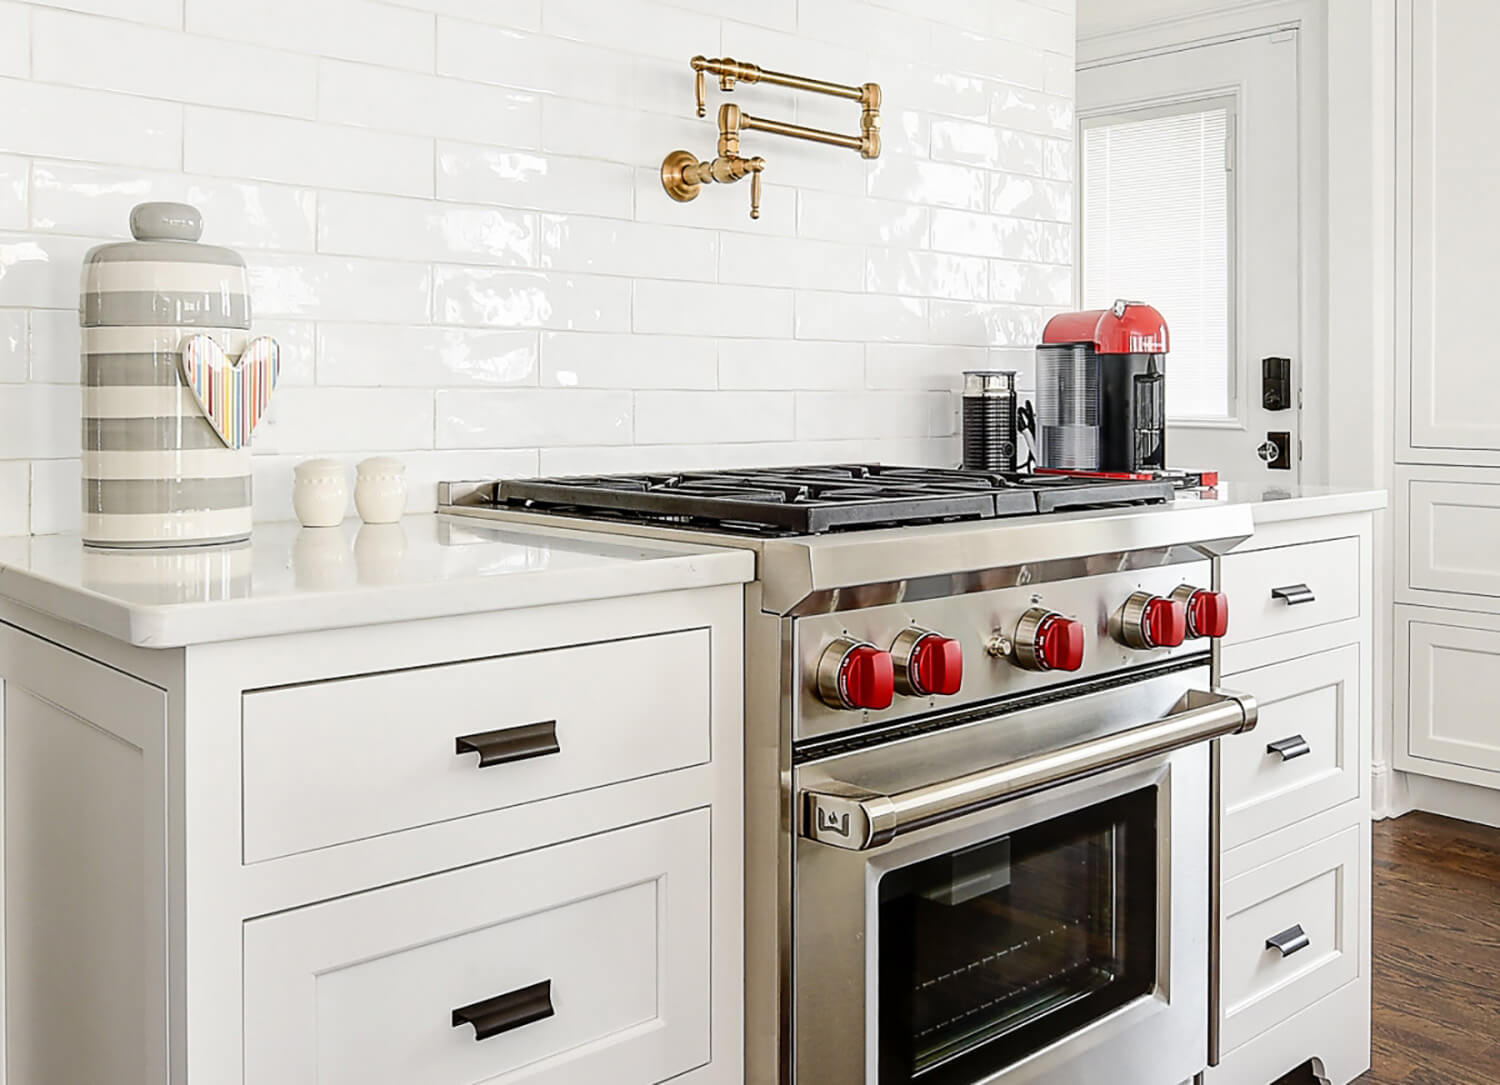 A beautifull all white kitchen with dark hardwood floors, white pianted inset cabinets, and crisp white countertops.